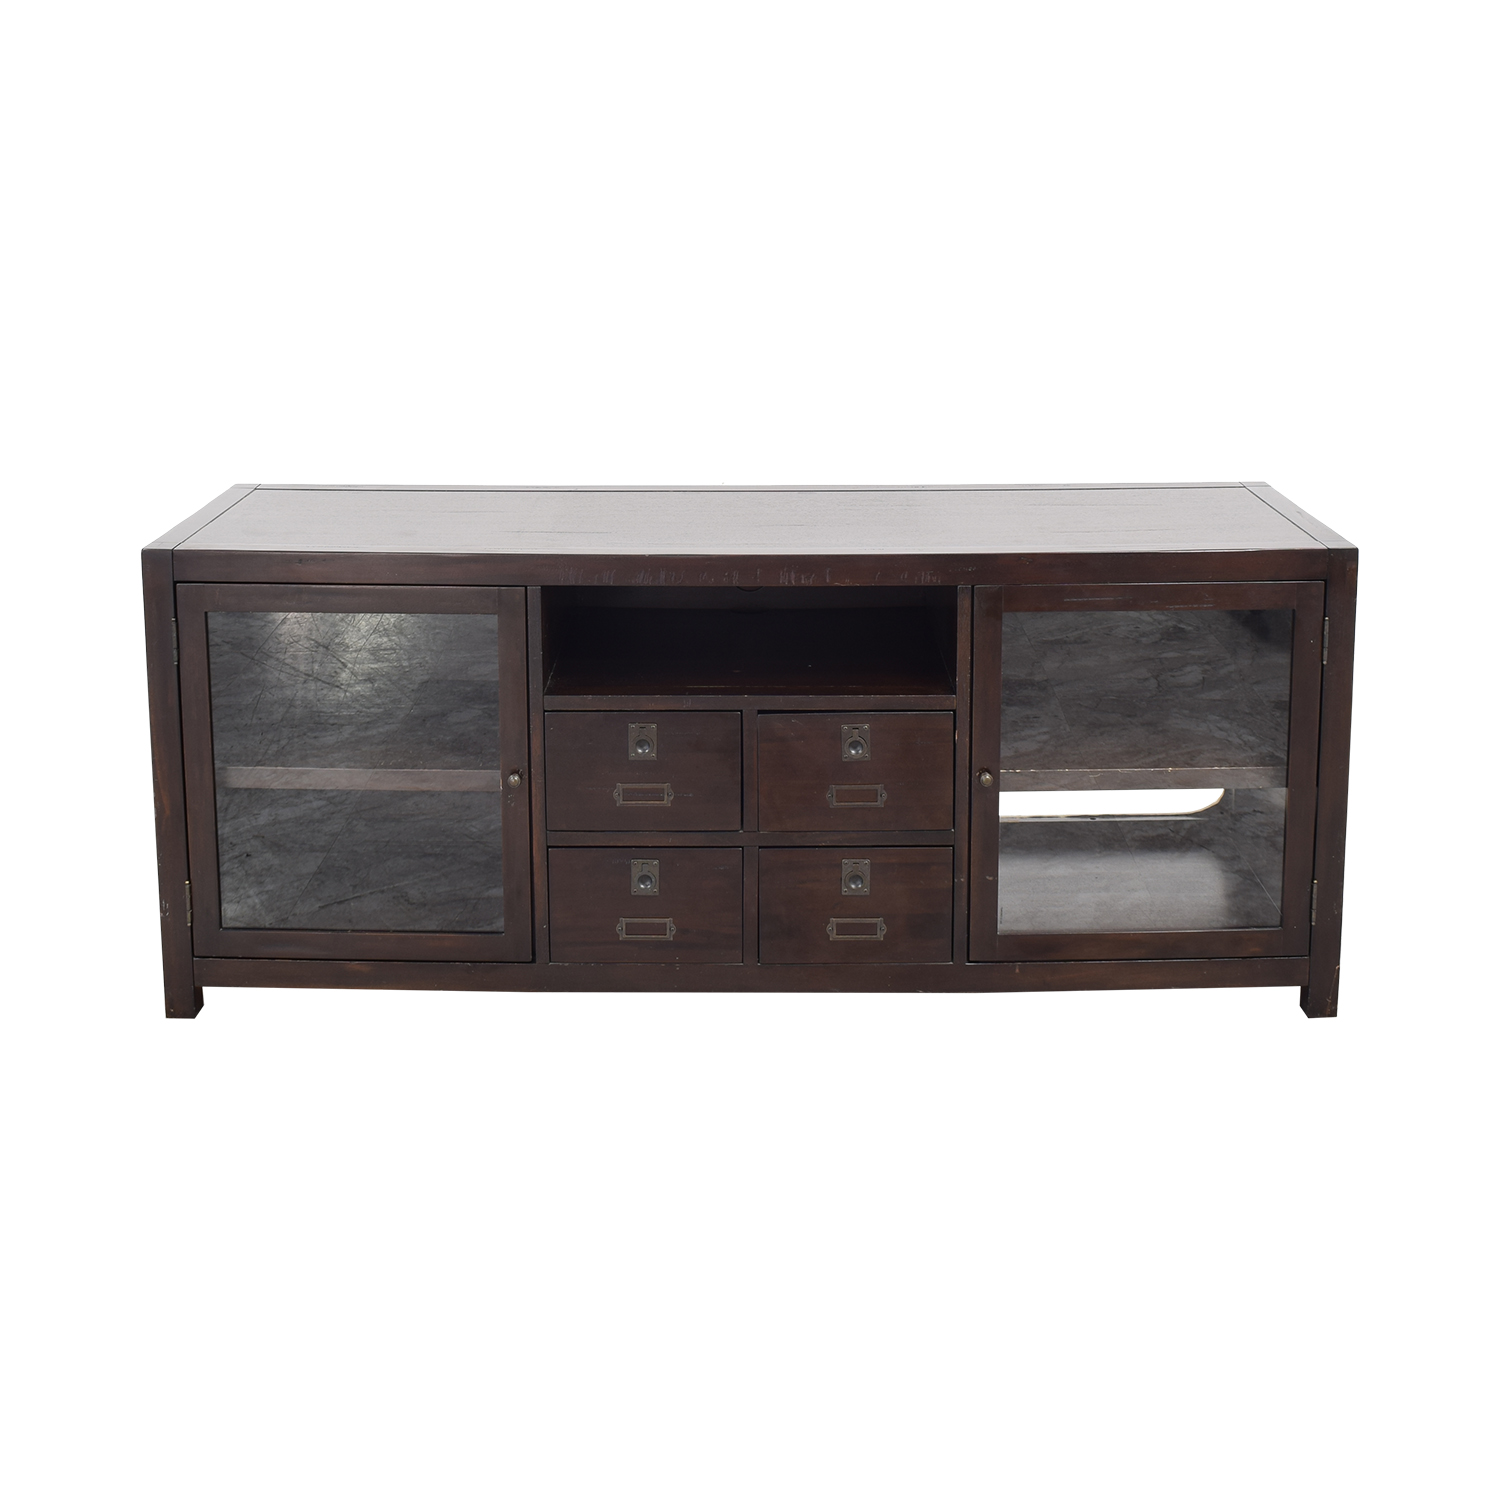 Pottery Barn Pottery Barn Media Console for sale